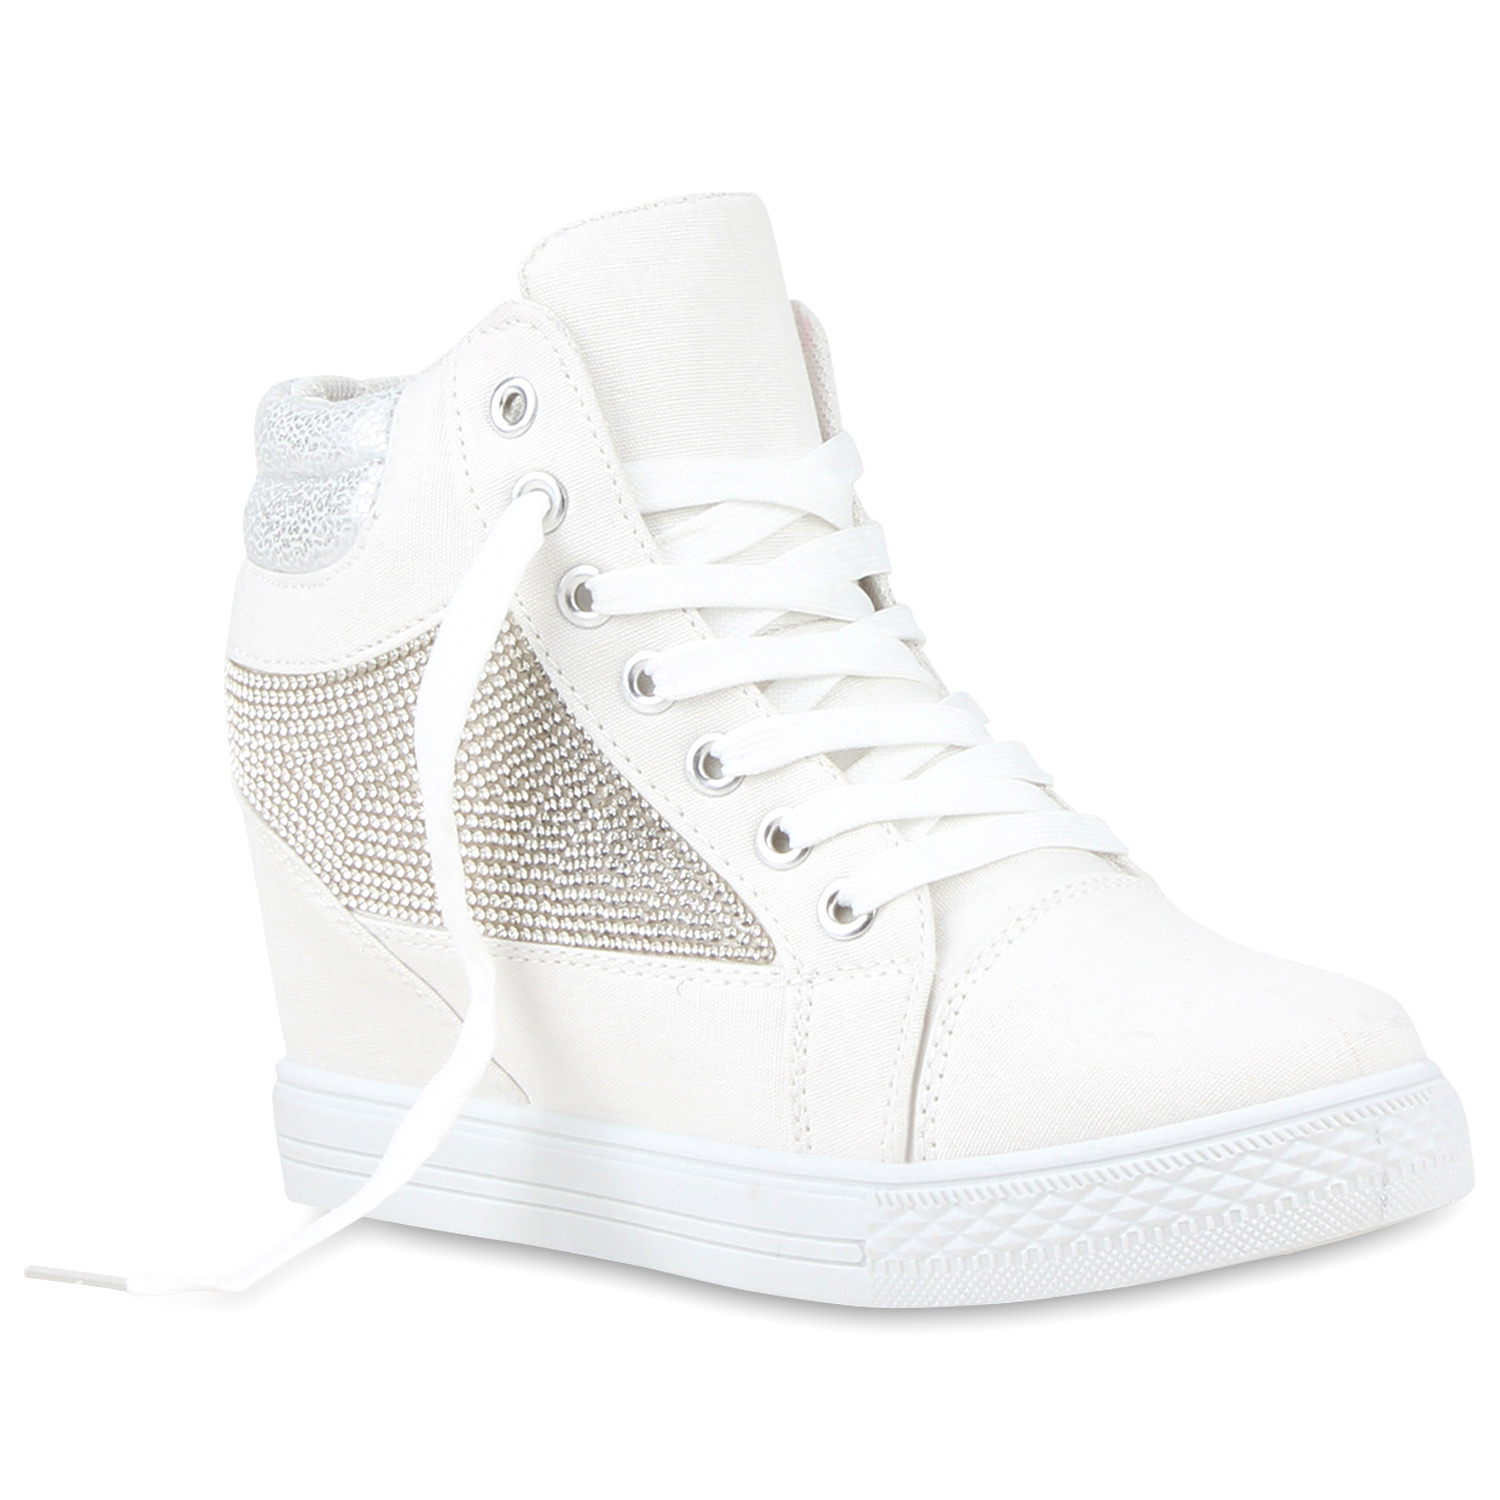 modische damen sneakers strass sneaker wedges keilabsatz 810653 ebay. Black Bedroom Furniture Sets. Home Design Ideas